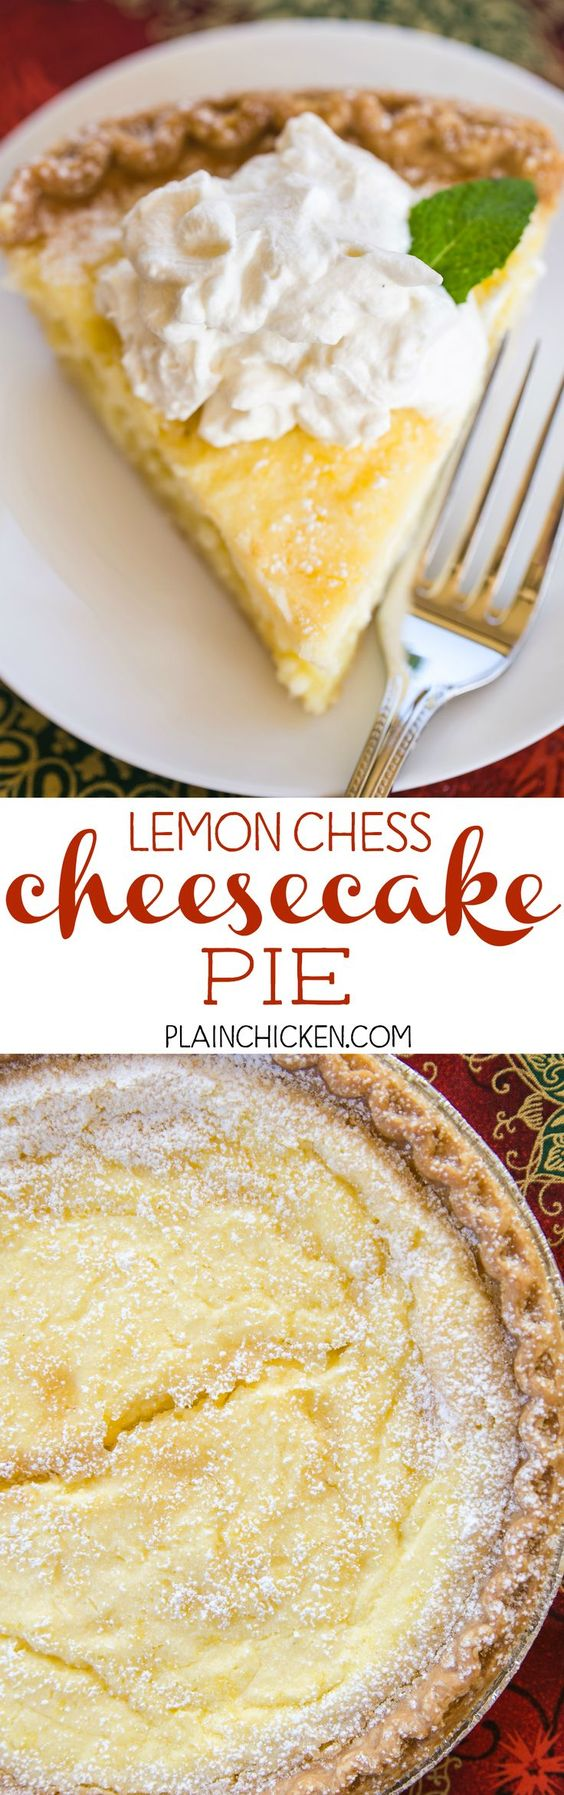 Lemon Chess Cheesecake Pie Recipe via Plain Chicken - two favorites in one dessert! Quick cheesecake layer on the bottom and a delicious homemade lemon chess pie on top! The BEST Easy Lemon Desserts and Treats Recipes - Perfect For Easter, Mother's Day Brunch, Bridal or Baby Showers and Pretty Spring and Summer Holiday Party Refreshments! #lemondesserts #lemonrecipes #easylemonrecipes #lemon #lemontreats #easterdesserts #mothersdaydesserts #springdesserts #holidaydesserts #summerdesserts